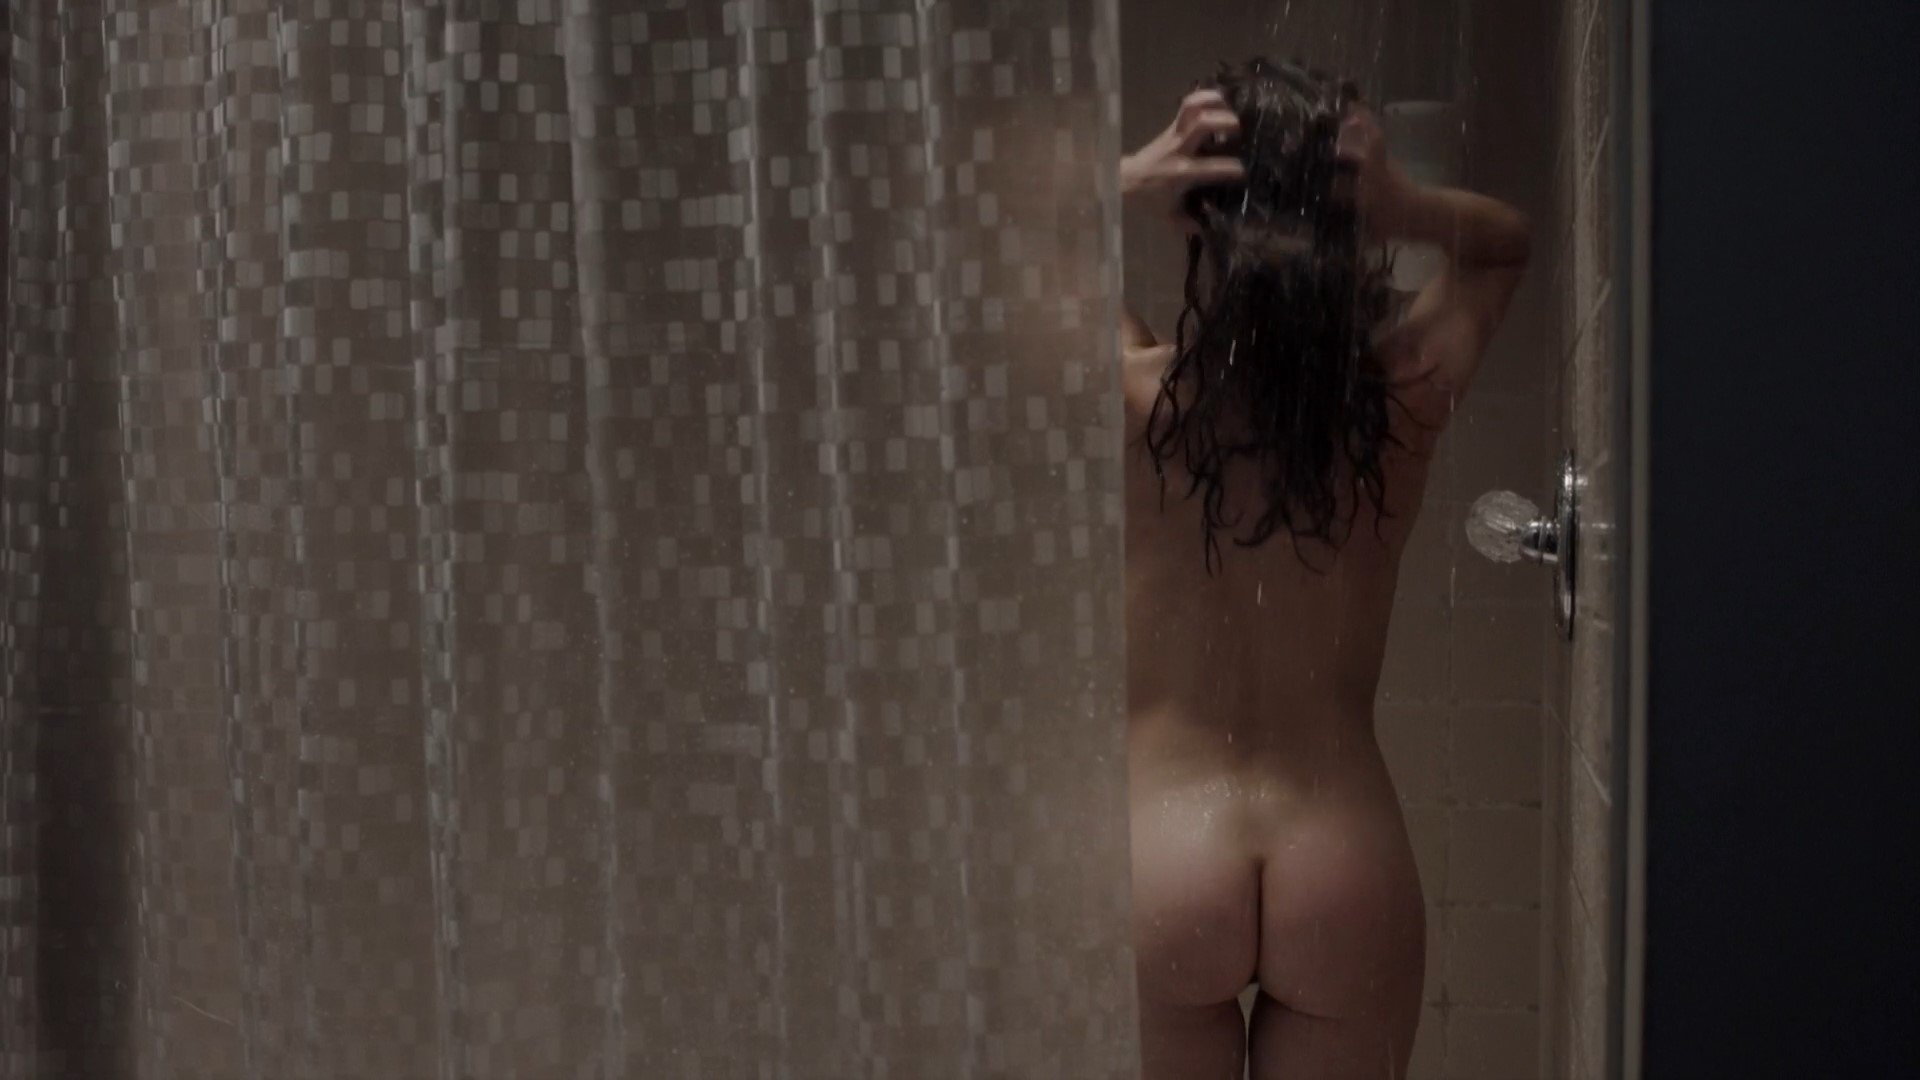 Nude tv movie scenes question